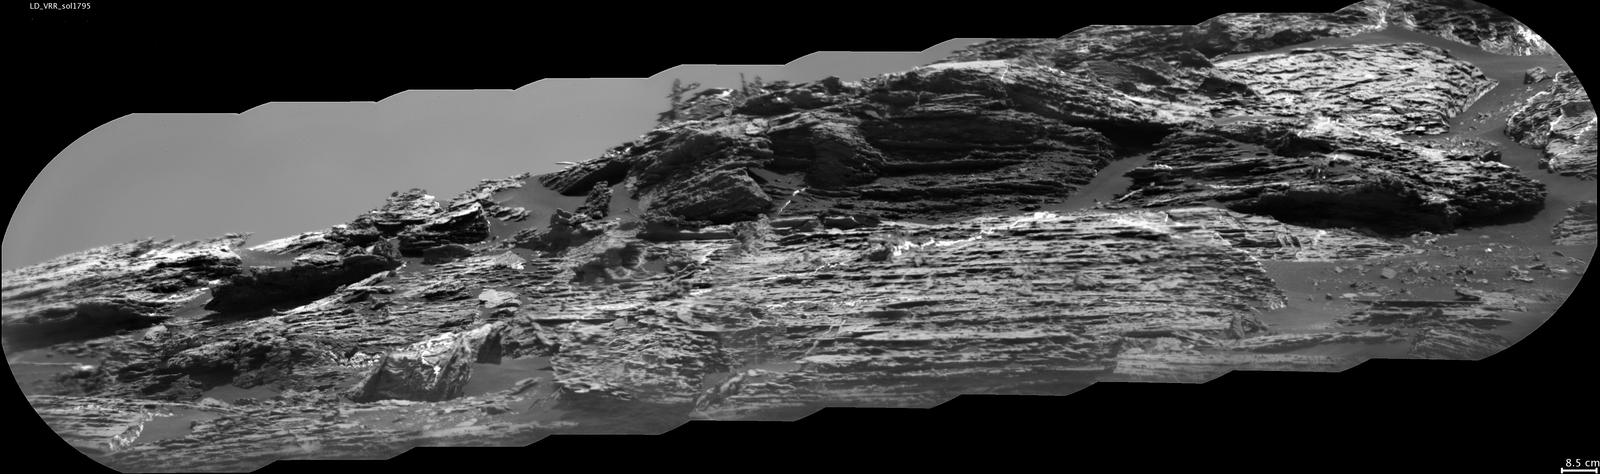 "Erosion Effects on ""Vera Rubin Ridge,"" Mars"